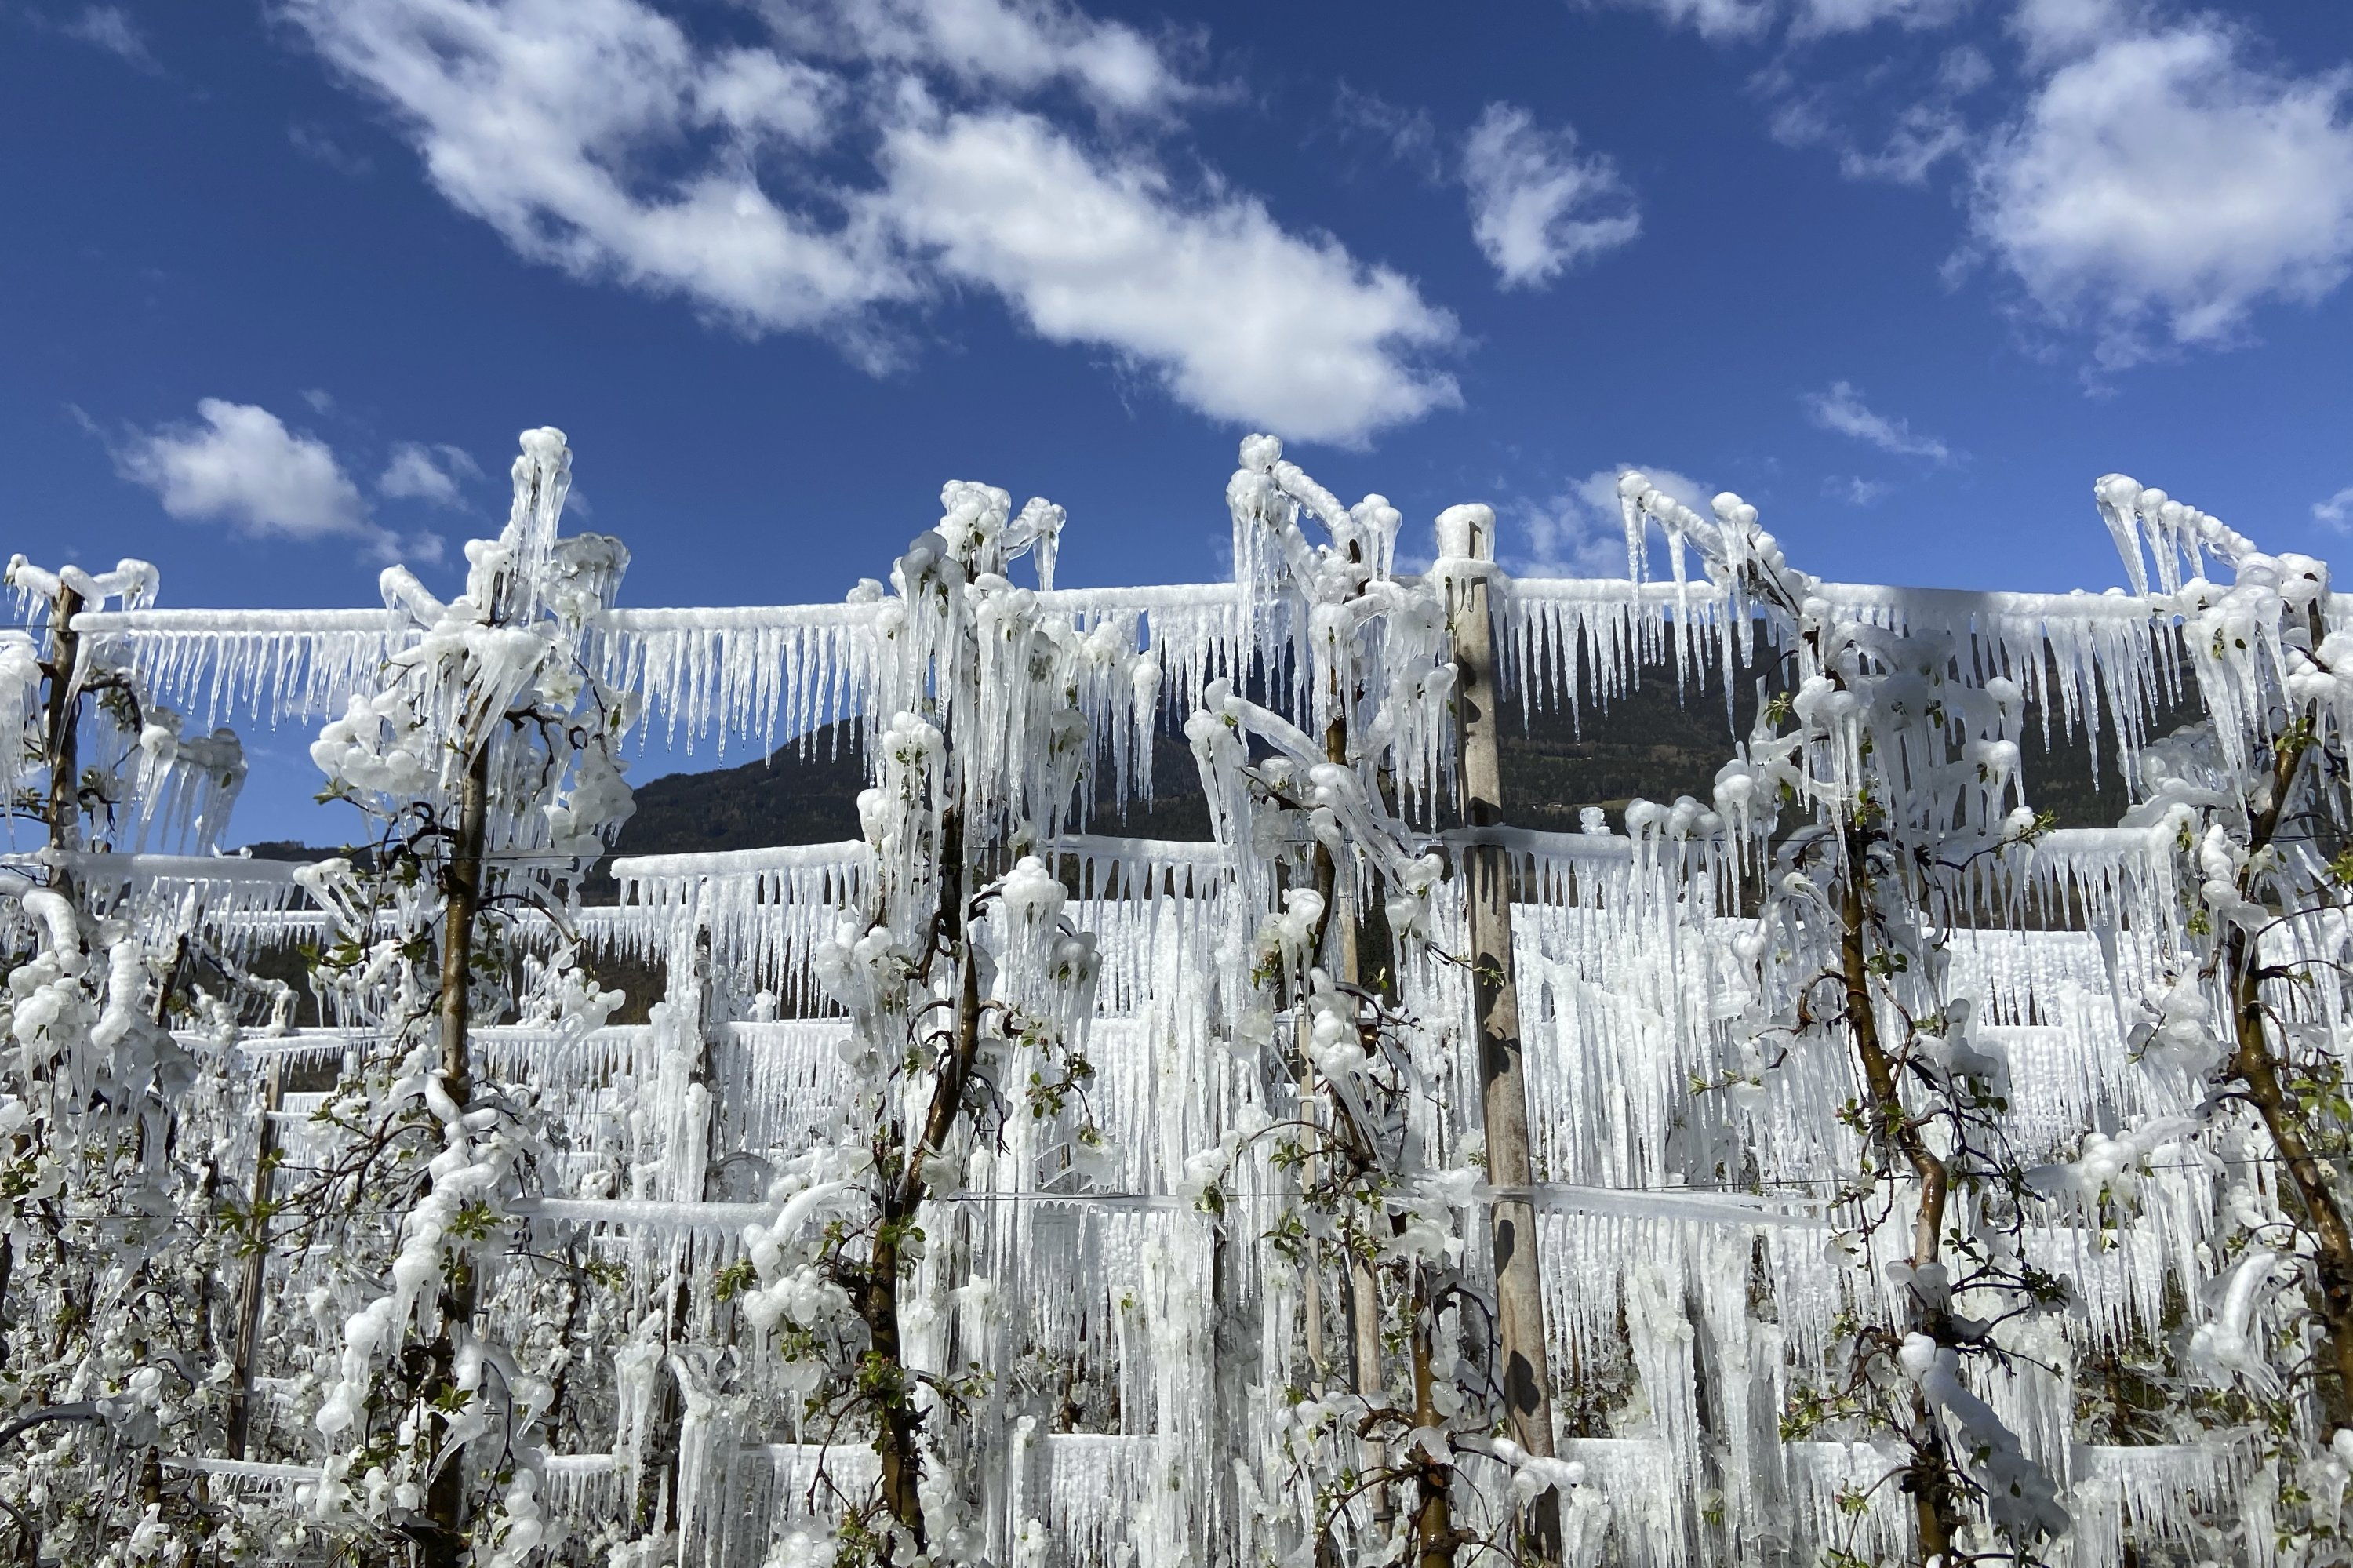 Artificially frozen apple trees covered with melting ice near Bressanone, in the northern Italian province of South Tyrol, Italy, on April 8, 2021. (AP Photo)